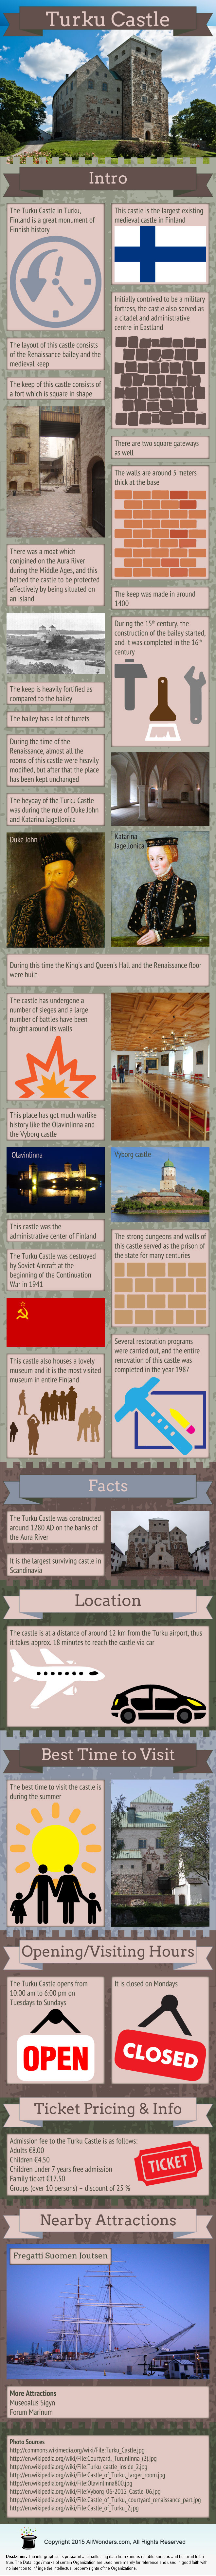 Turku Castle Infographic